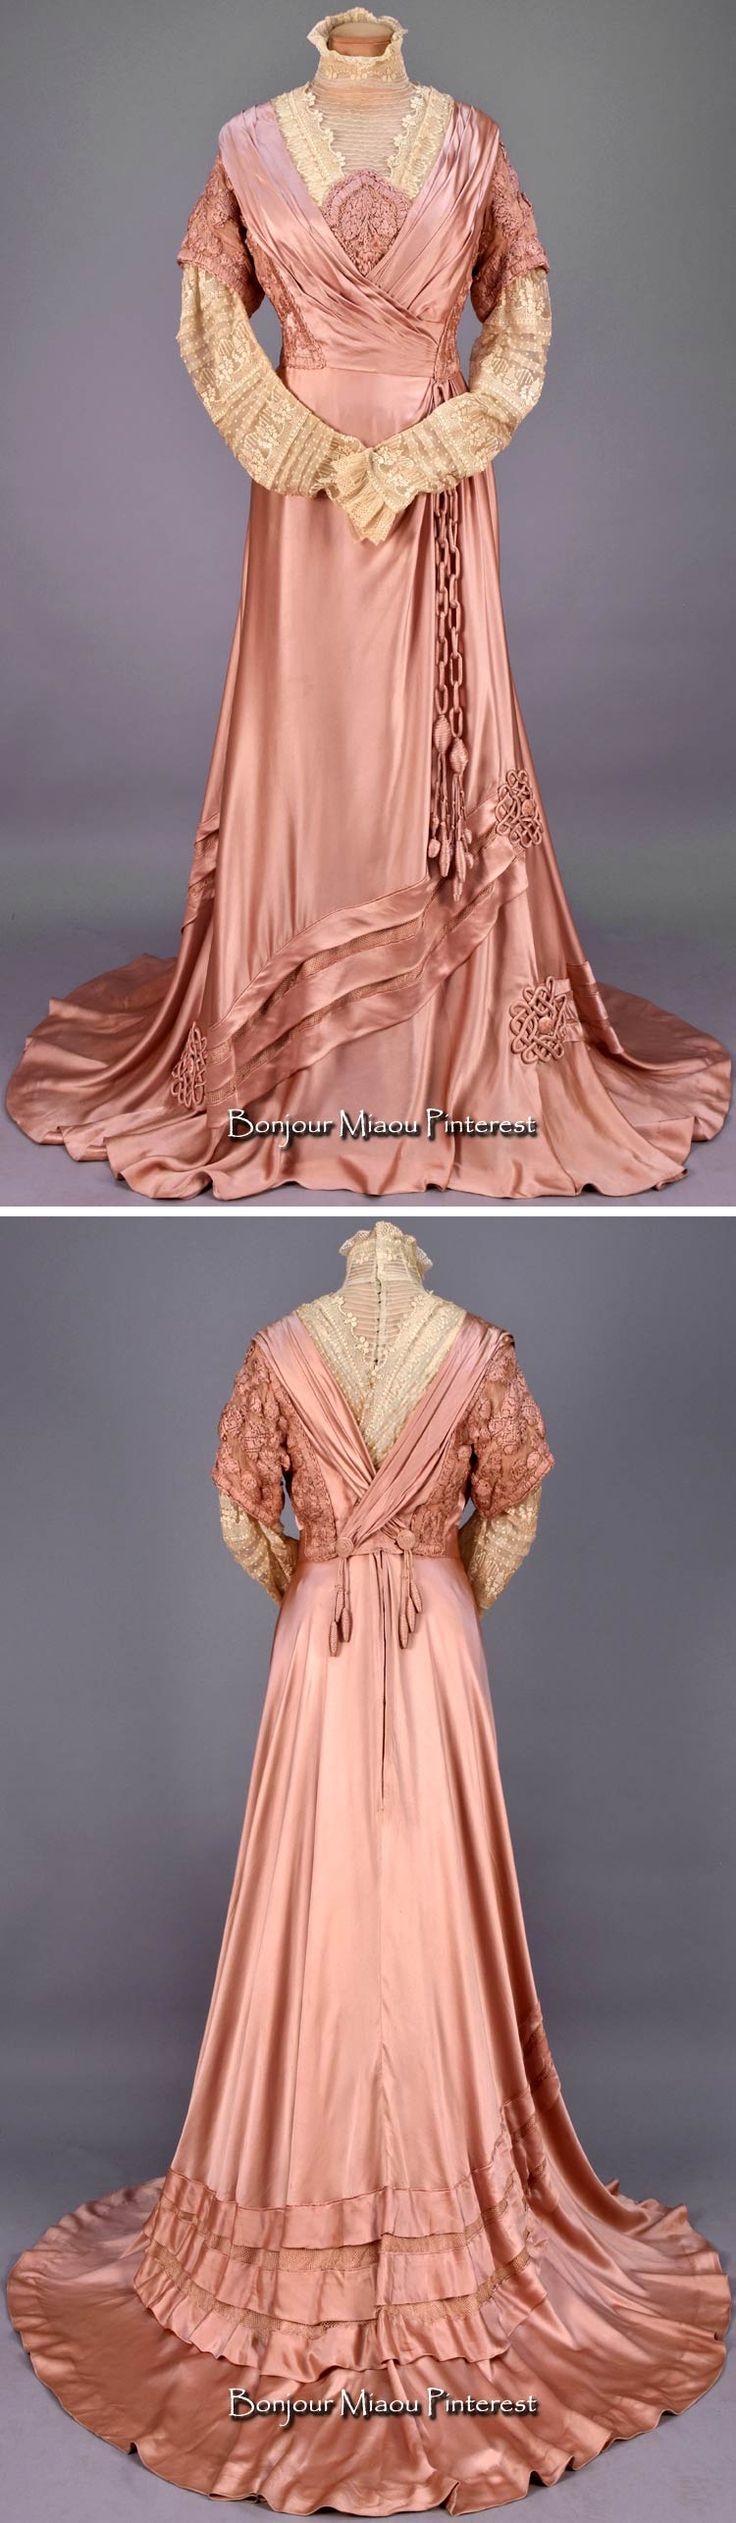 Afternoon dress, Templier et Rondeau, Paris, ca. 1908. Dusty rose silk charmeuse with cream embroidered net high-neck bodice insert and long sleeve, pleated silk wrap-front bodice with heavily embroidered short chiffon sleeve, inserts and center oval, draped and angled skirt, self tassels at back and ends of self chain suspended from waist, trained skirt decorated with net inserts and Celtic knot appliques, satin under-skirt with pleated hem ruffle. Woven waistband label. Whitaker Auctions